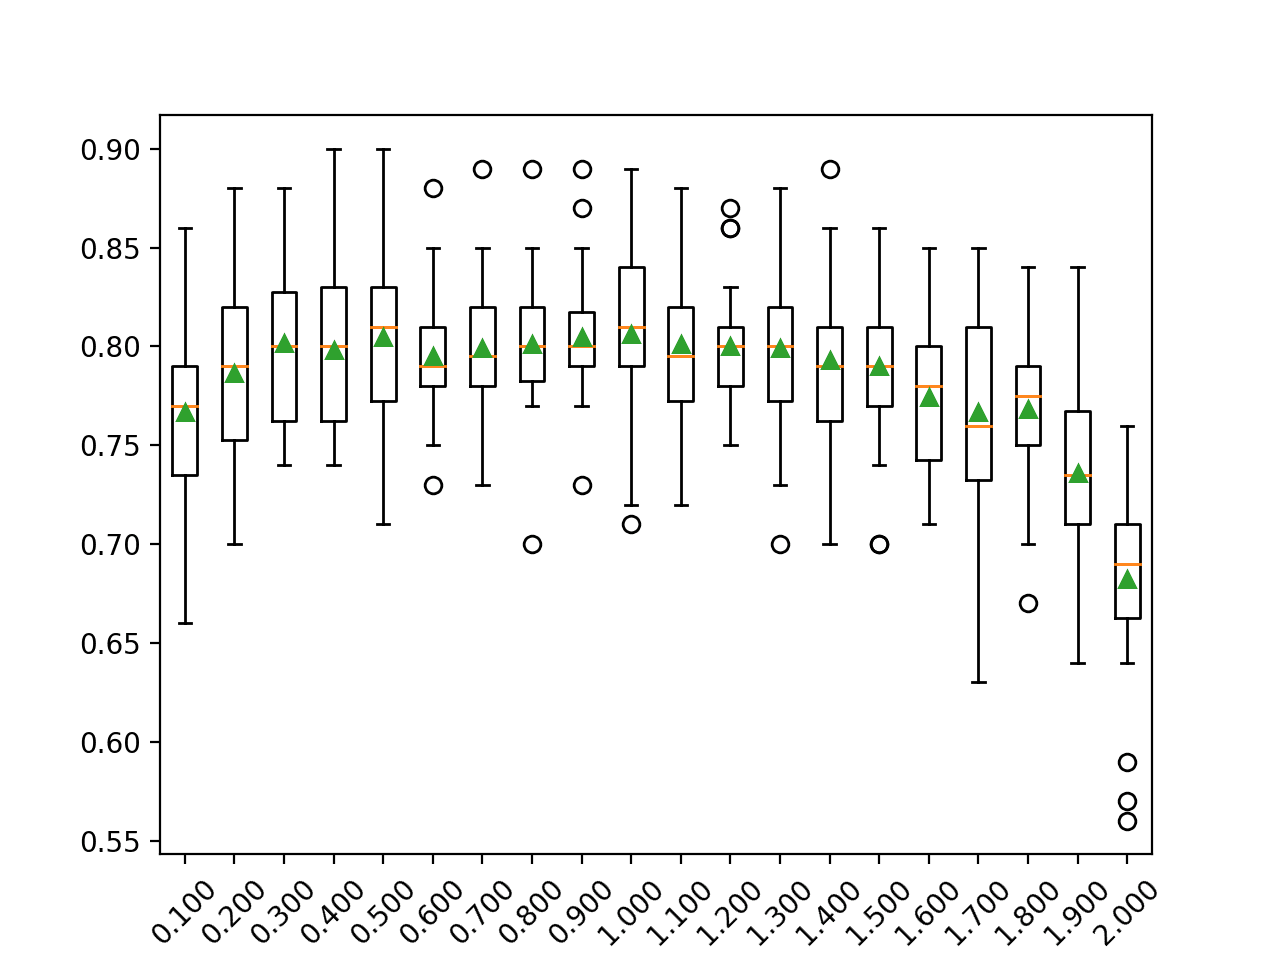 Box Plot of AdaBoost Ensemble Learning Rate vs. Classification Accuracy